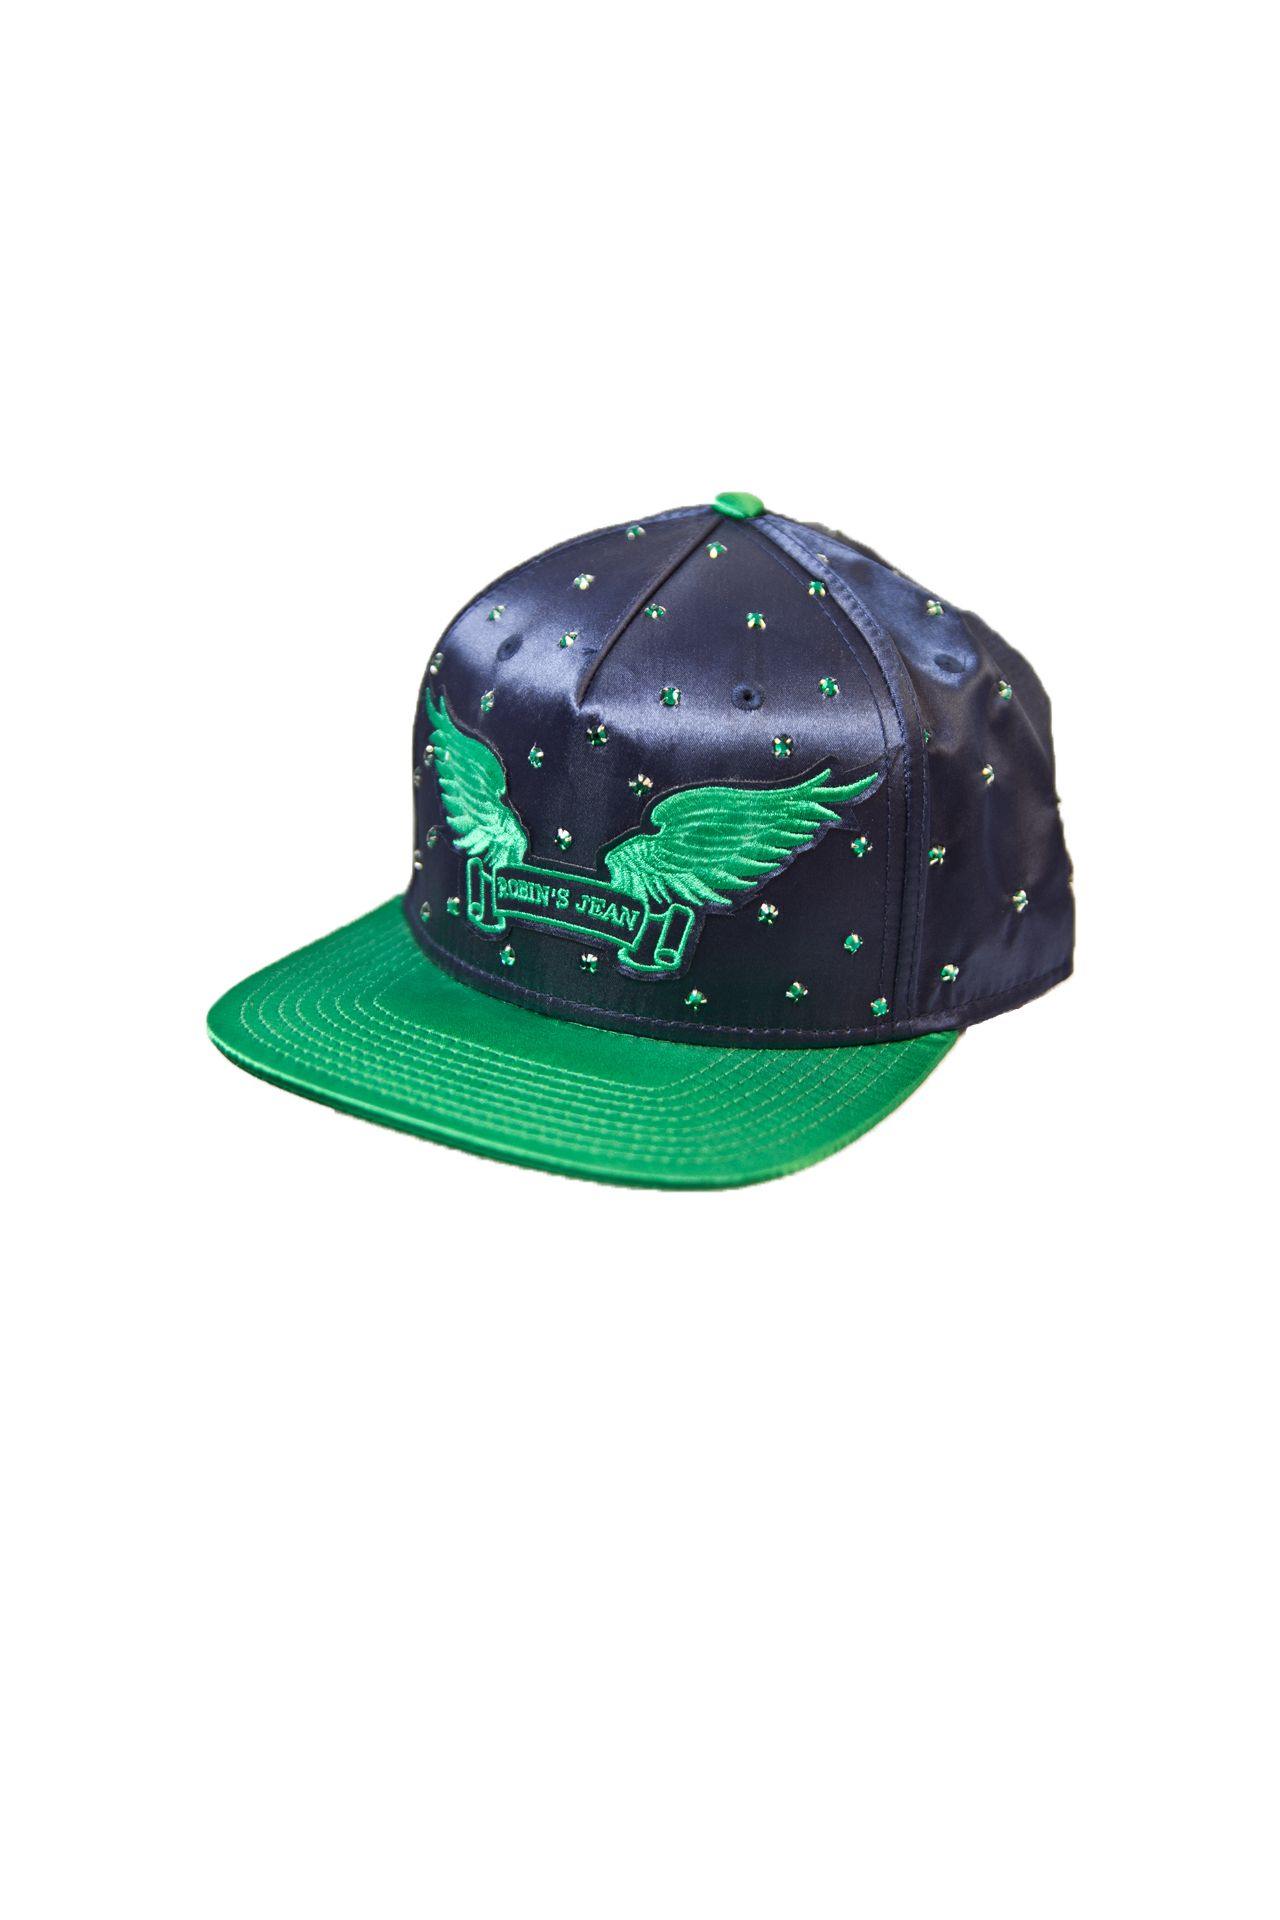 NAVY SATIN CAP 2 TONES WITH GREEN CRYSTALS AND SIGNATURE WINGS